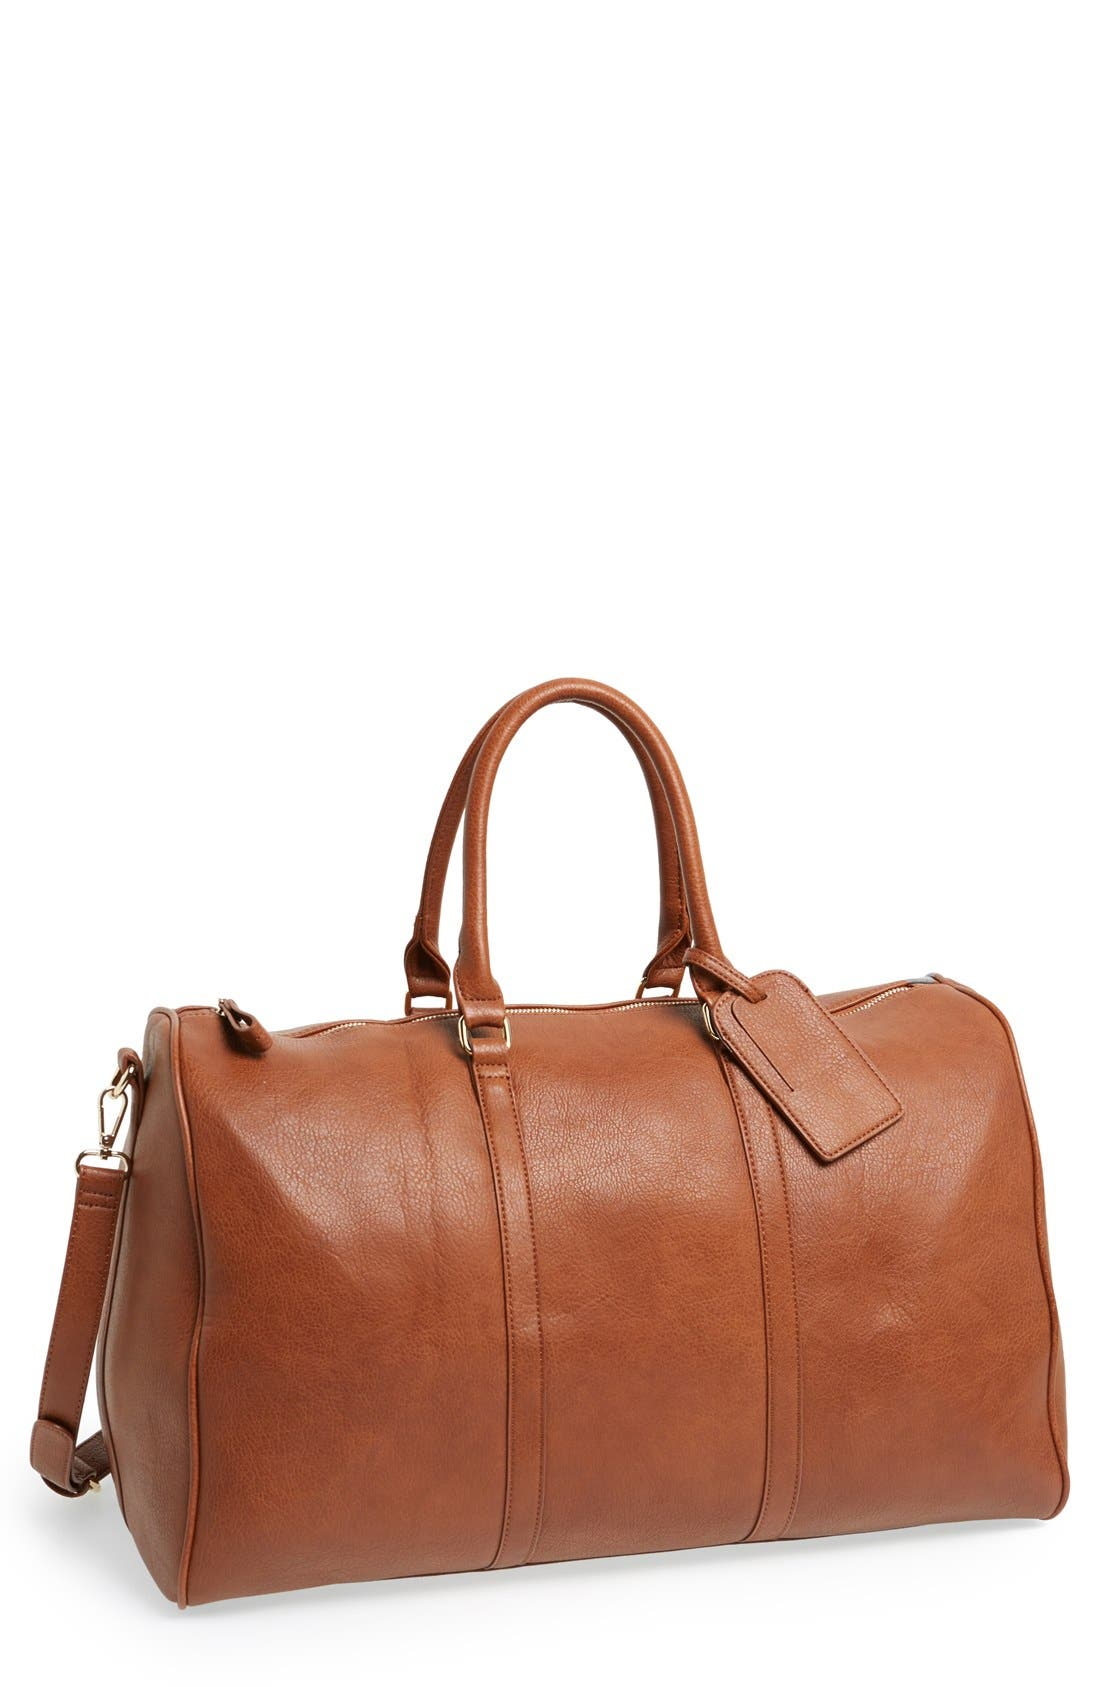 SOLE SOCIETY 'Lacie' Faux Leather Duffel Bag, Main, color, BROWN